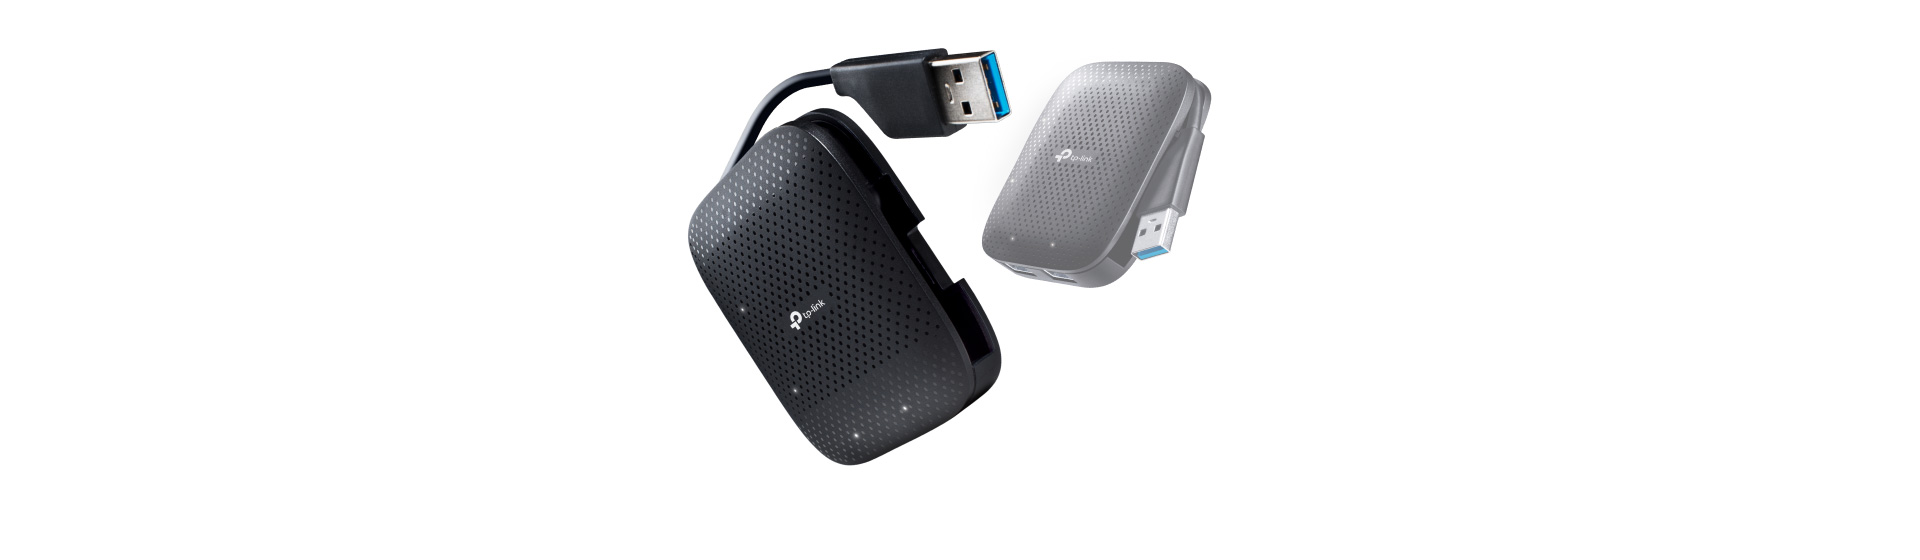 TP-LINK UH400 COMPACT